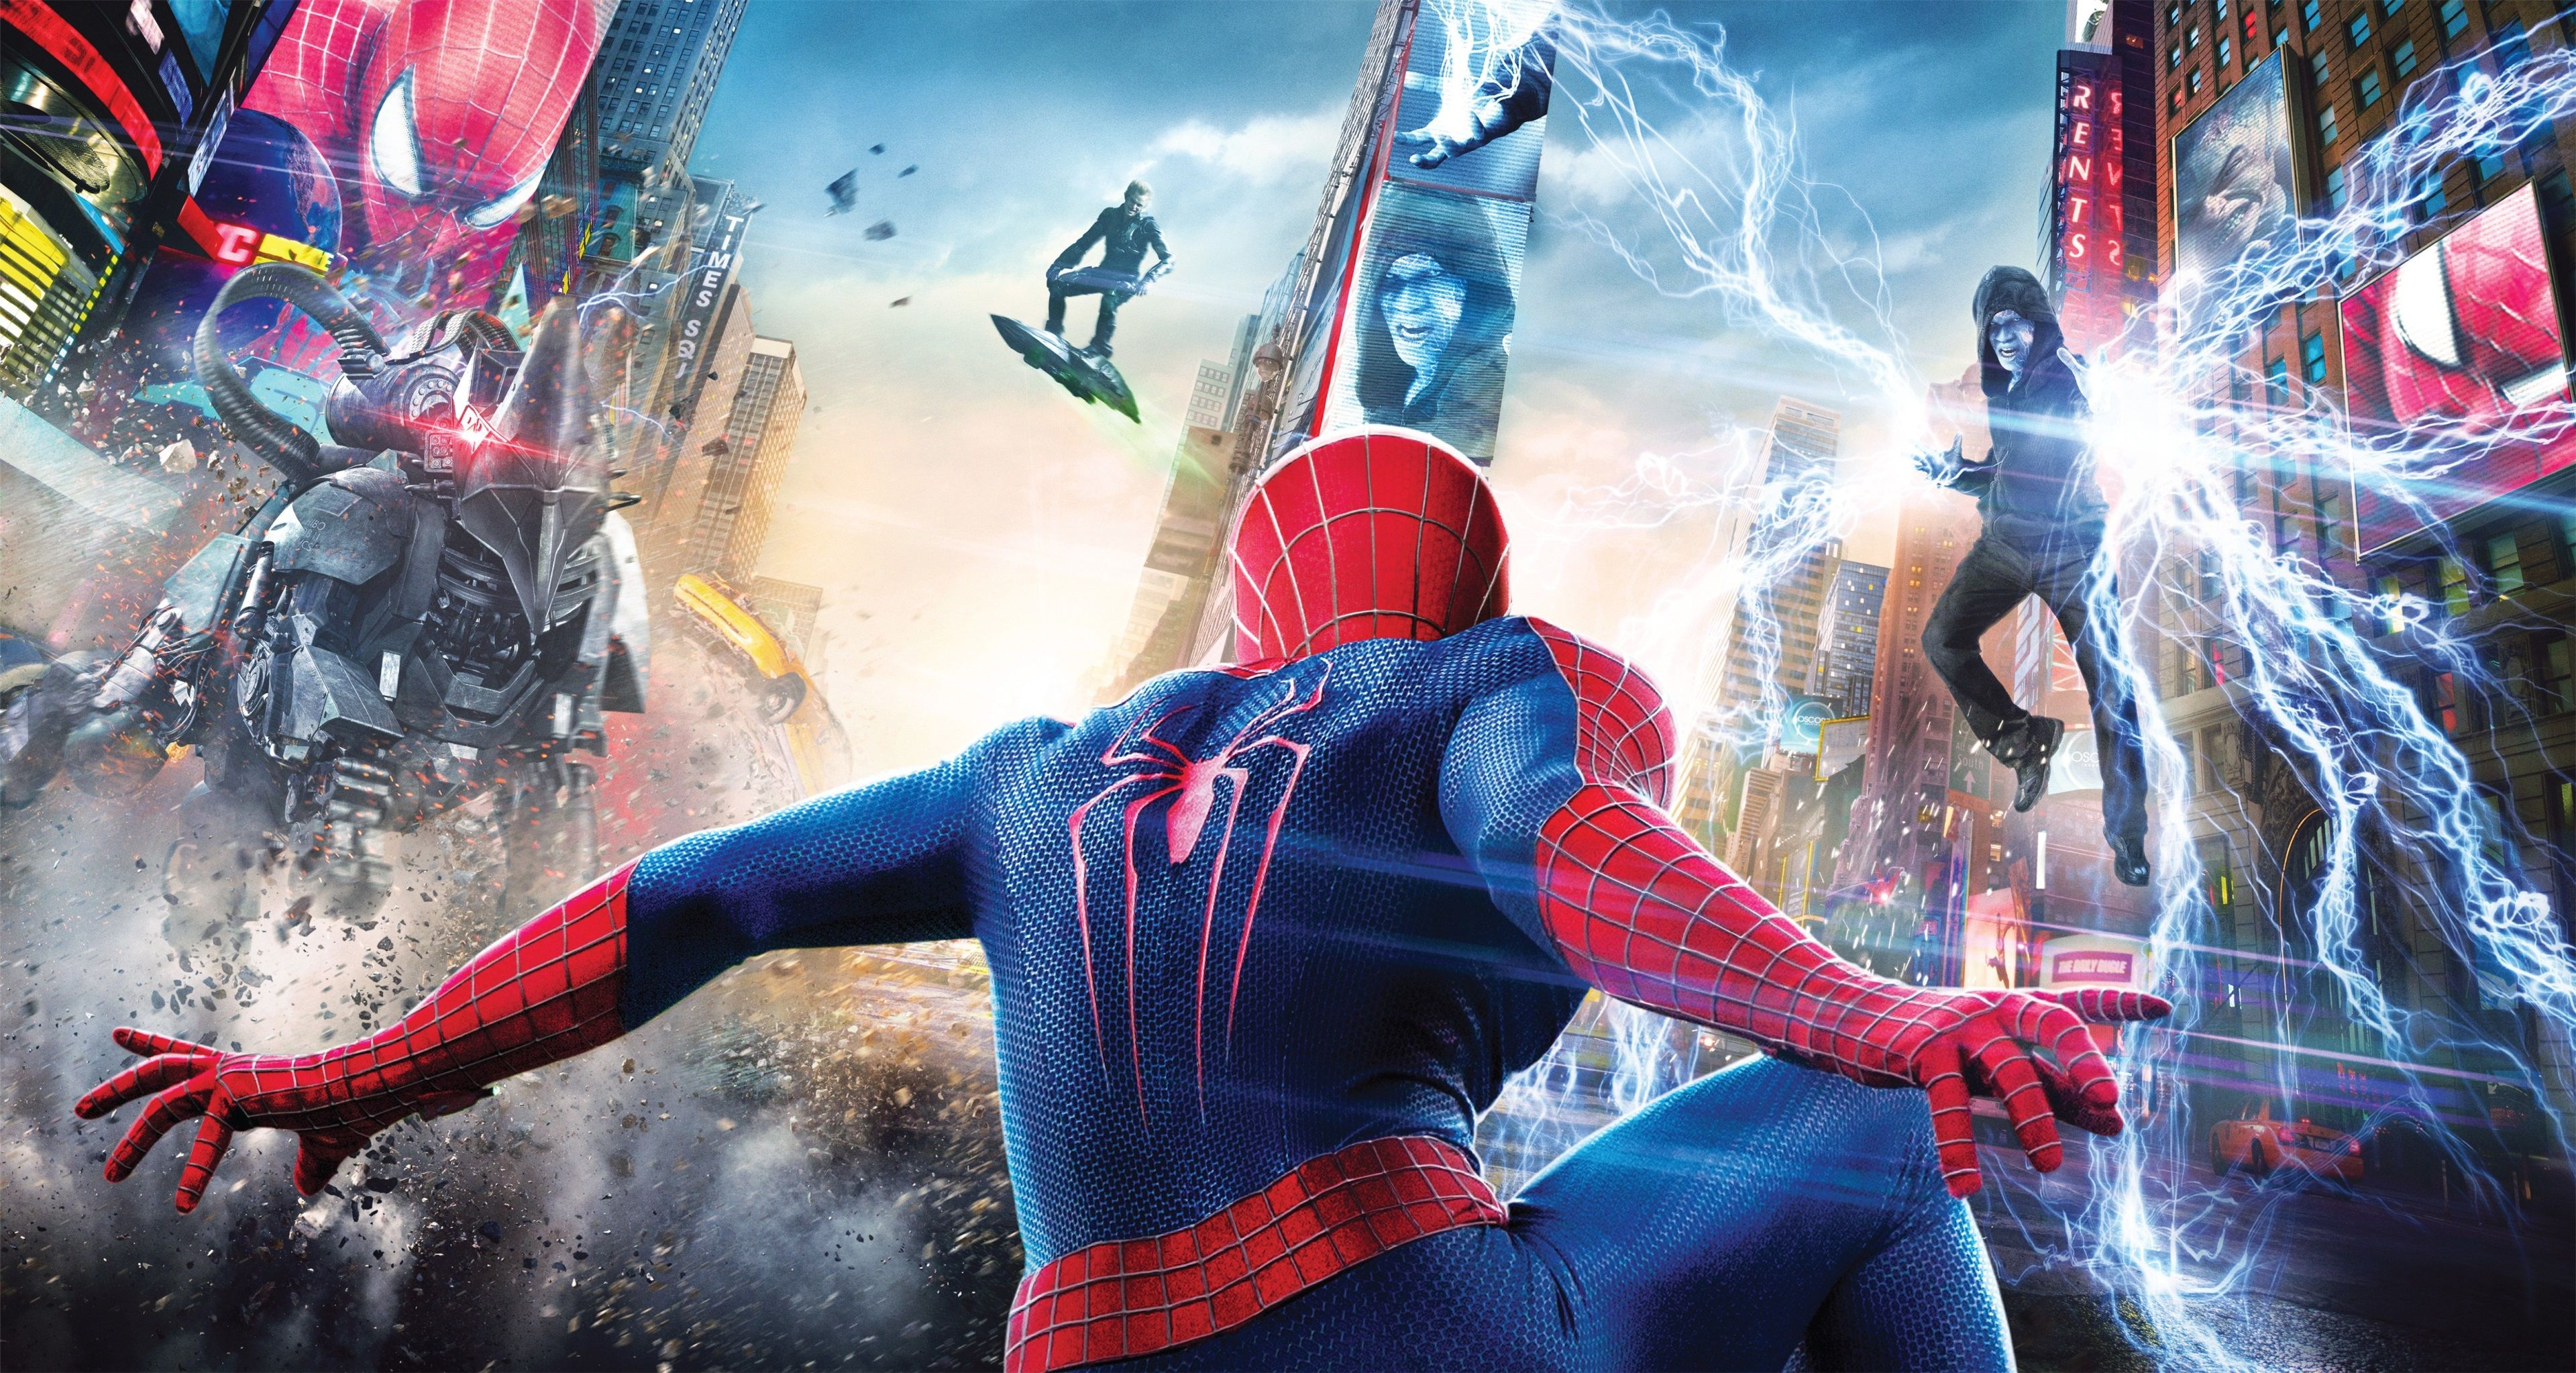 3840x2046 The Amazing Spider Man 2 4k Free Pc Wallpaper Spiderman Marvel Movie Posters Amazing Spiderman